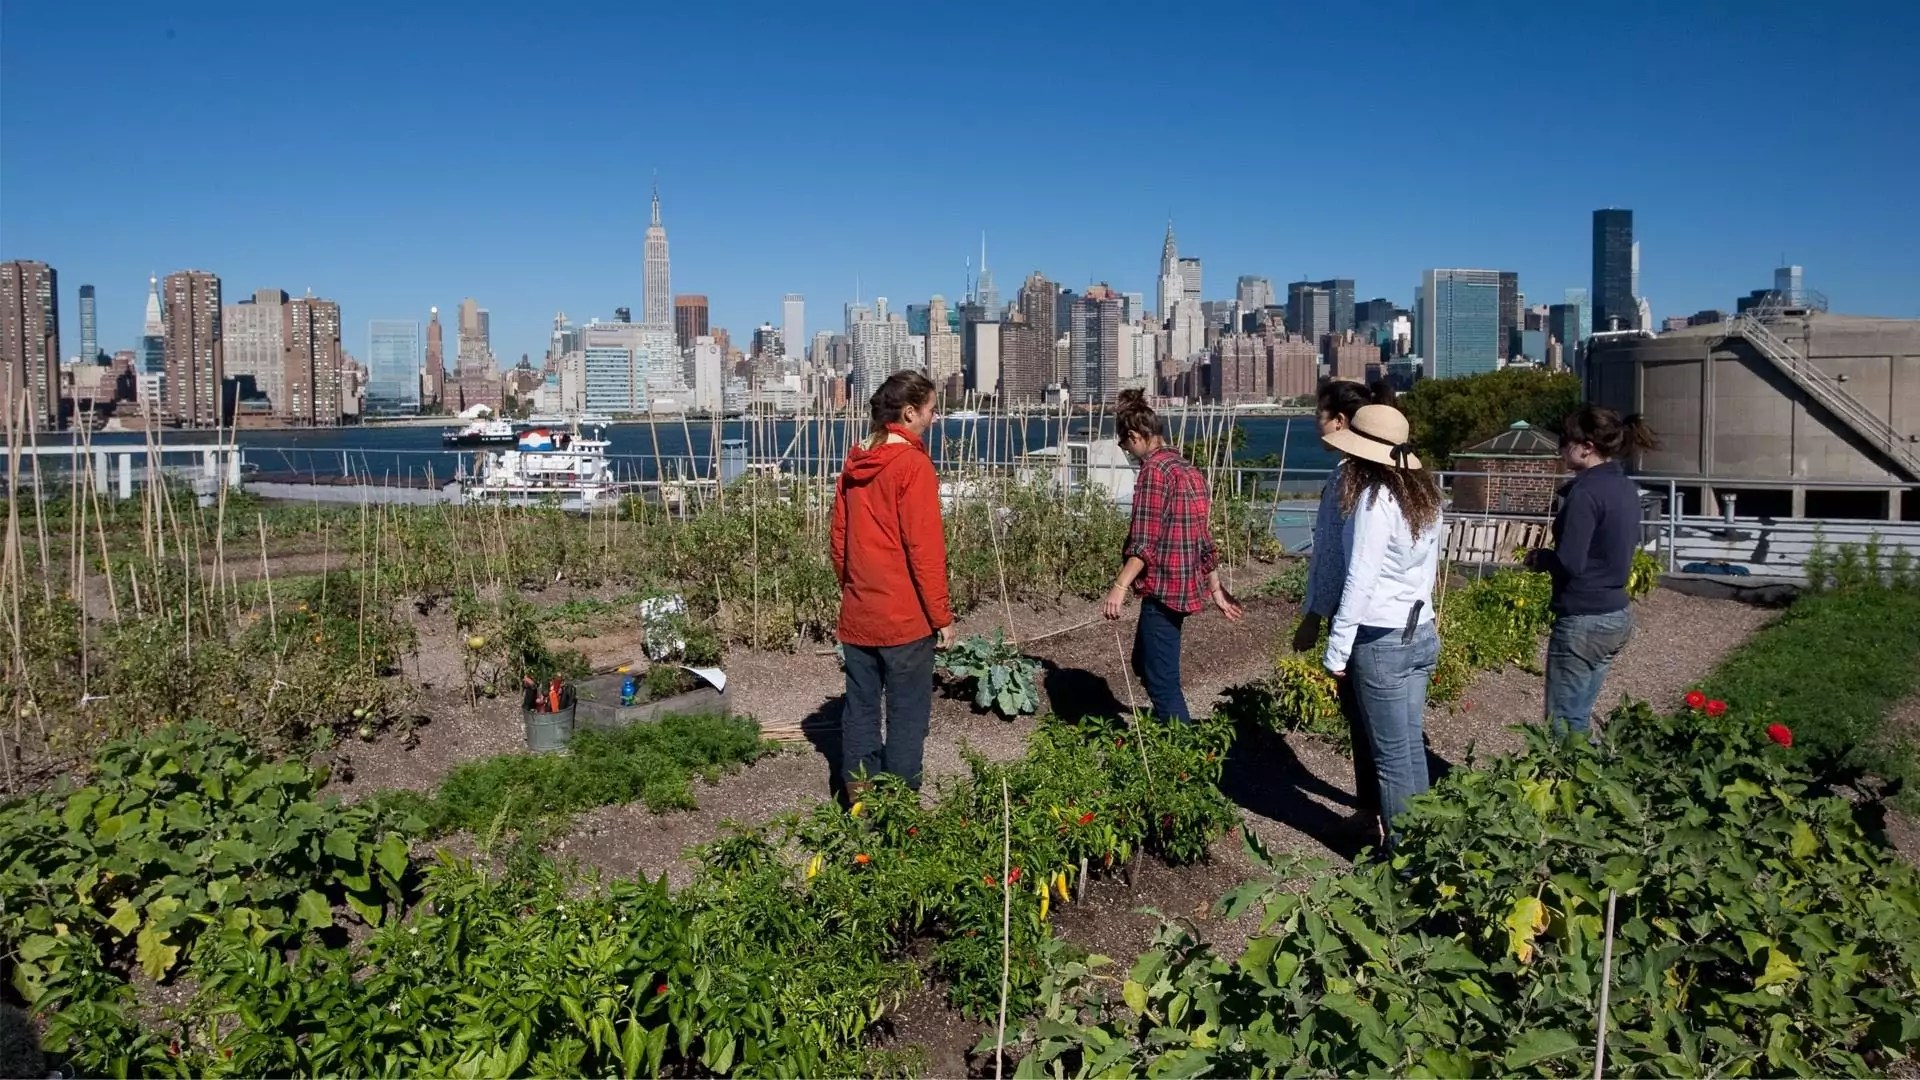 Five people work in a garden across the bay from the New York skyline.